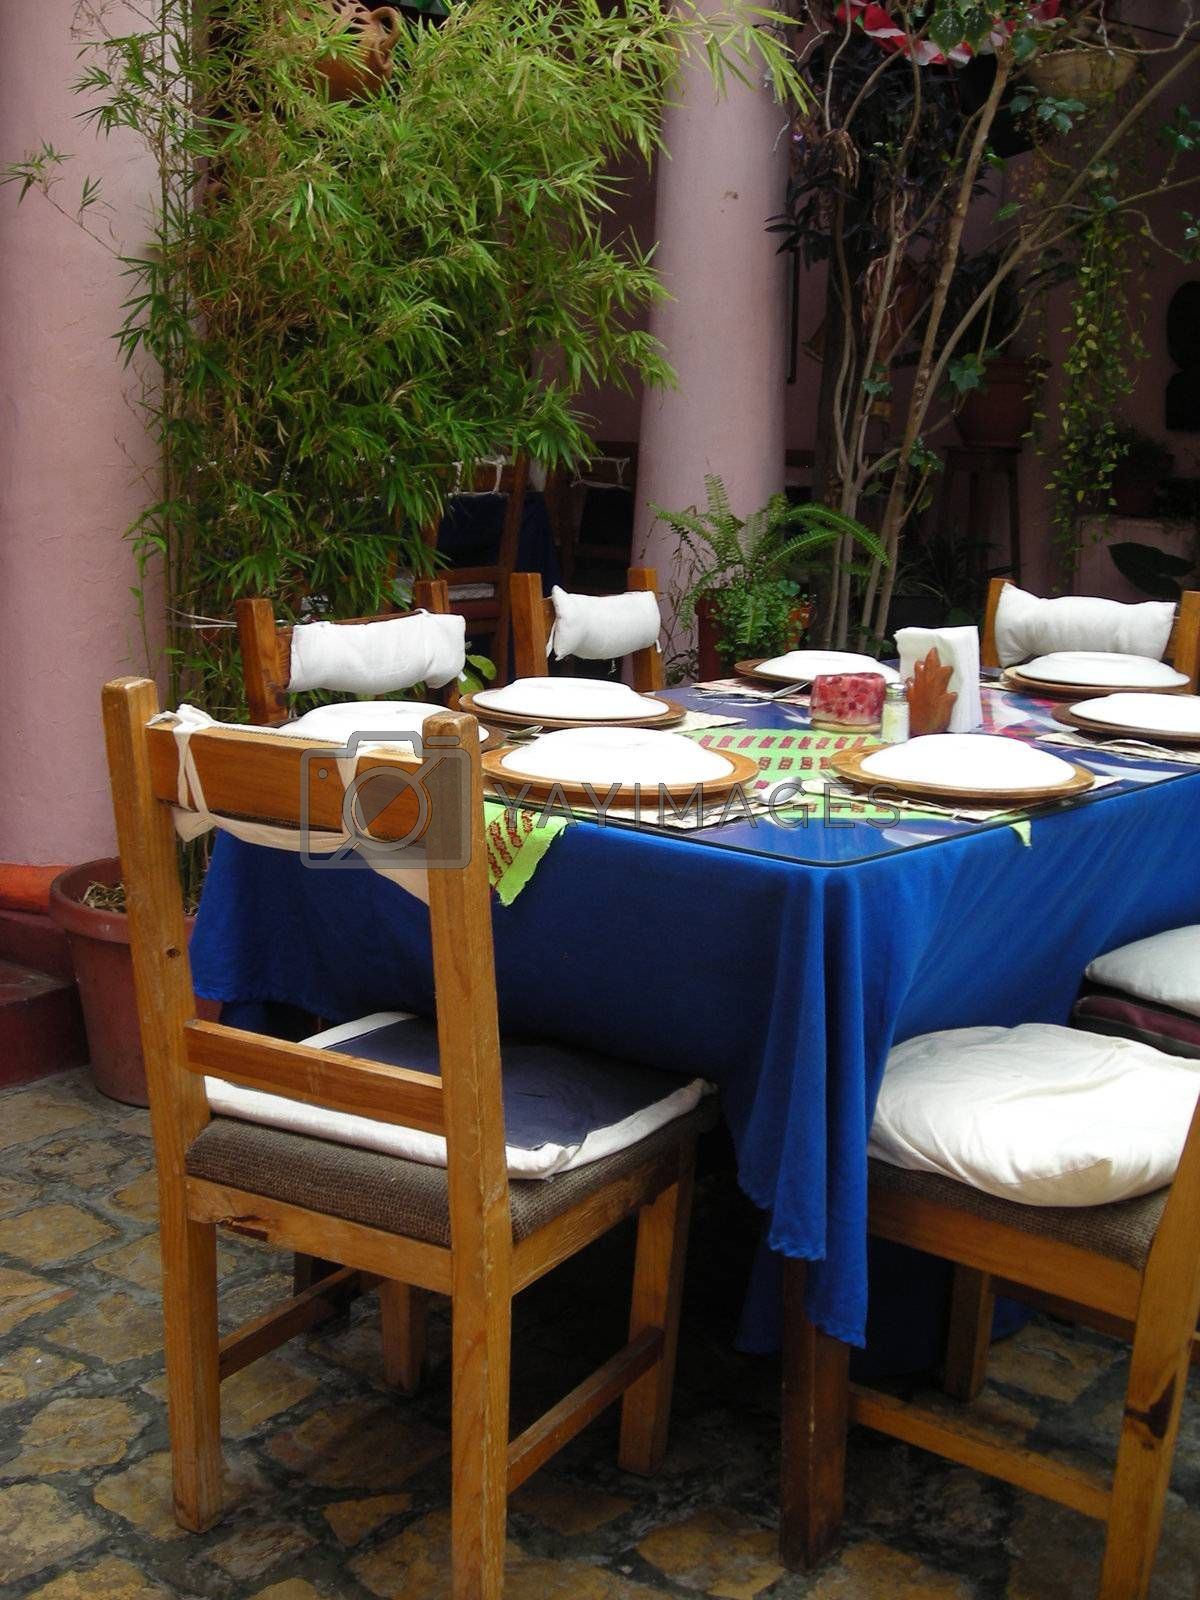 Mexican Restaurant showing table setting in Chiapas, Mexico